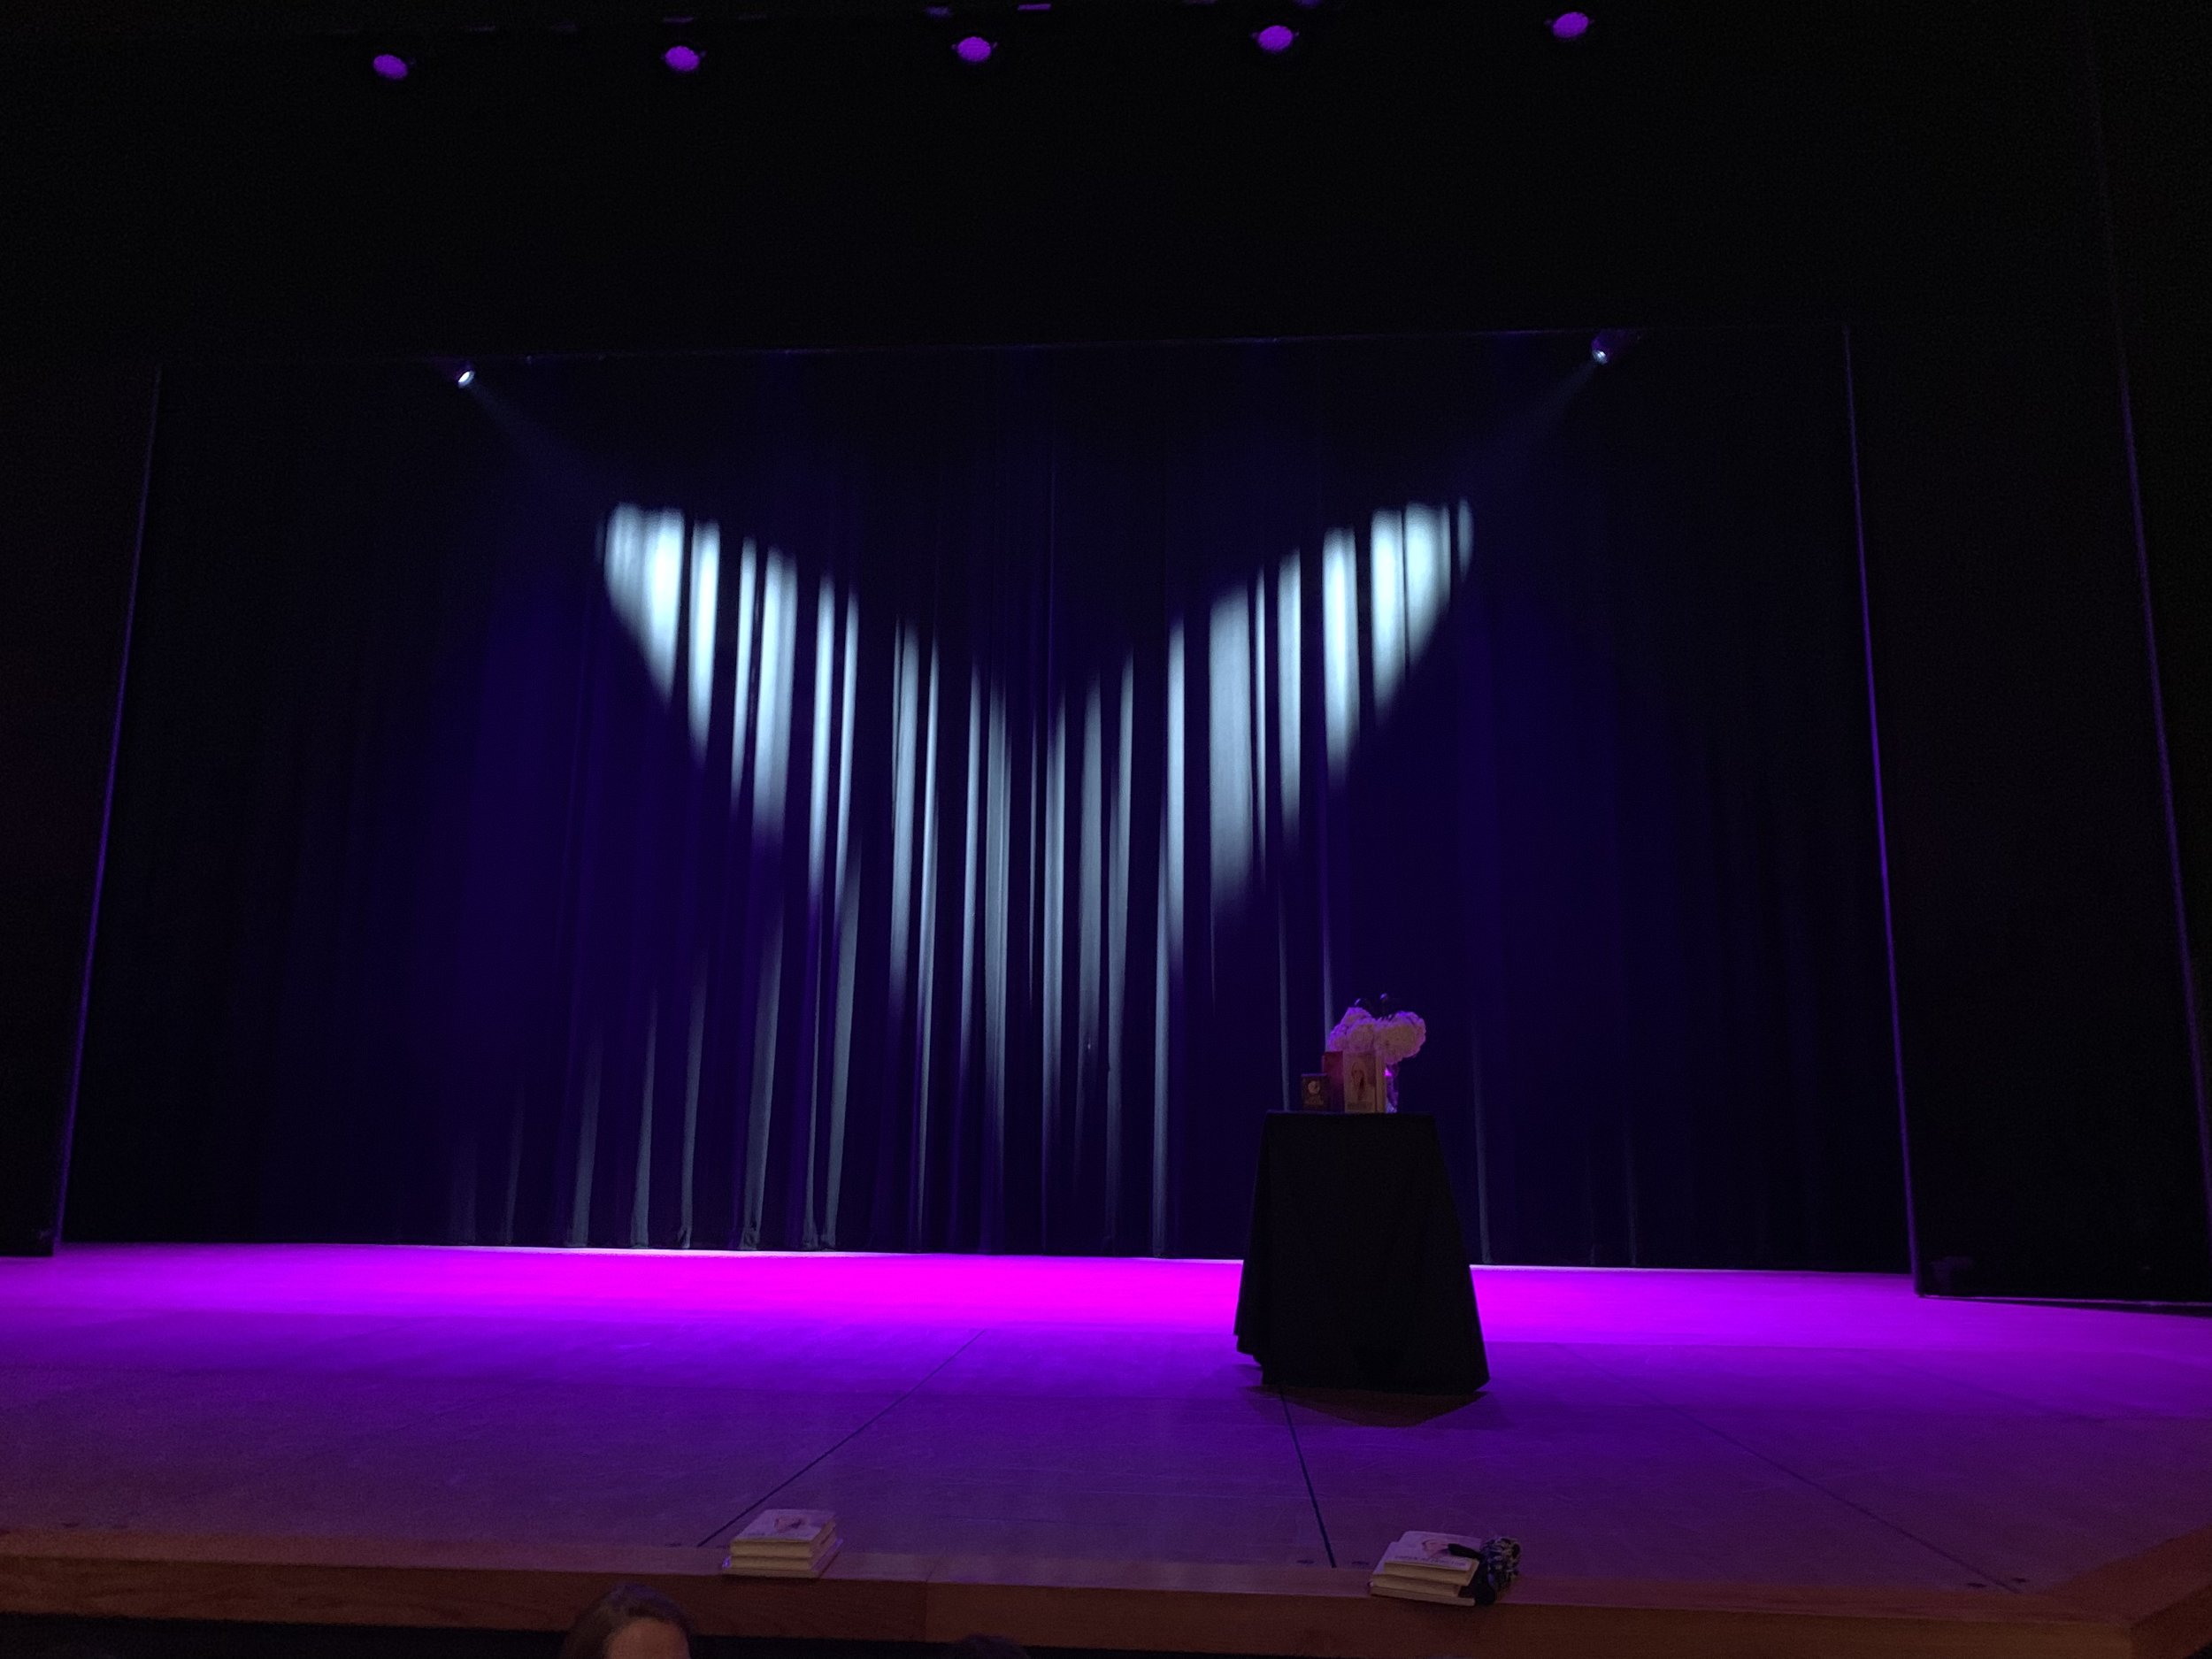 Stage!